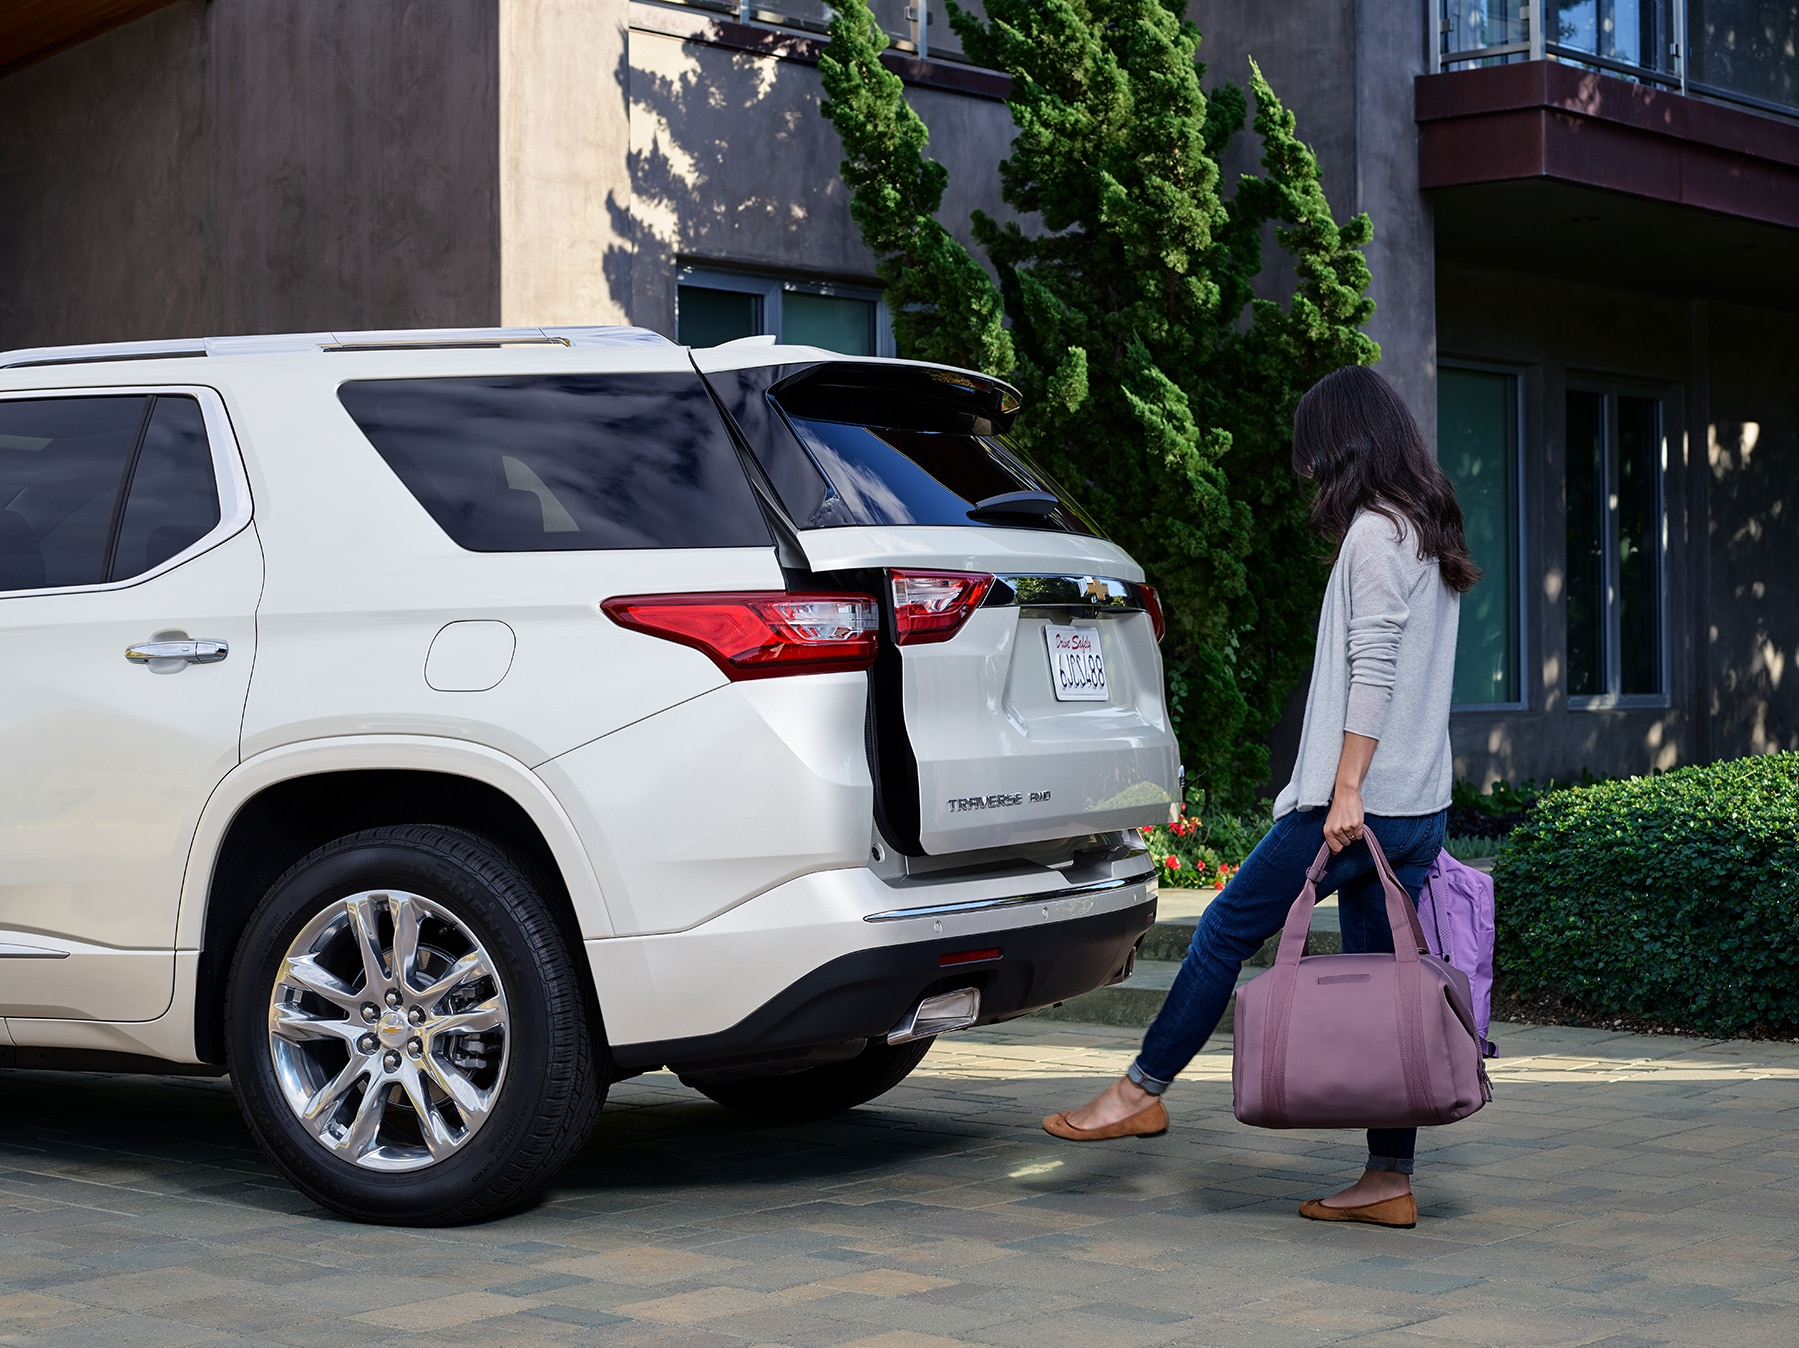 Chevrolet of New Bern is a Car Dealership in New Bern near Bogue NC | Woman accessing trunk of 2020 Chevrolet Traverse